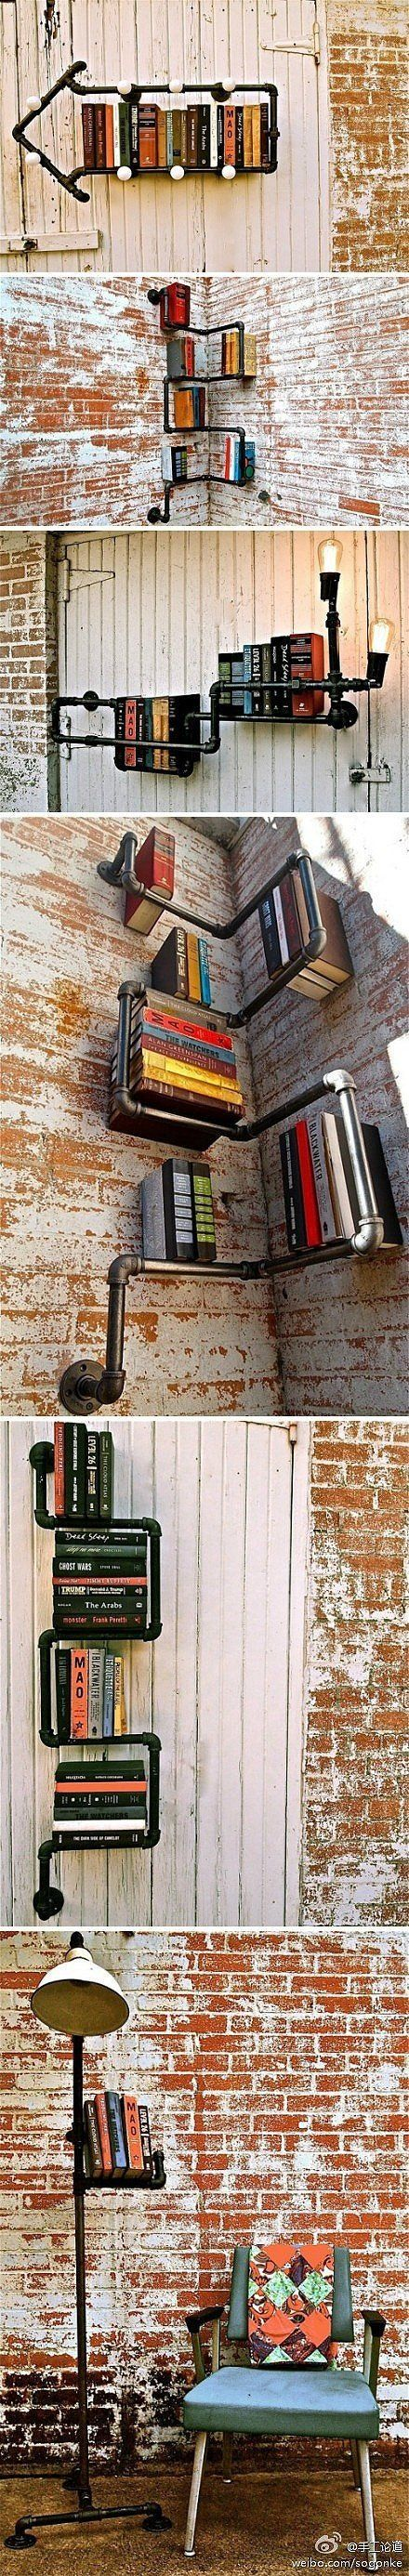 best 25 industrial pot racks ideas on pinterest pot racks pot